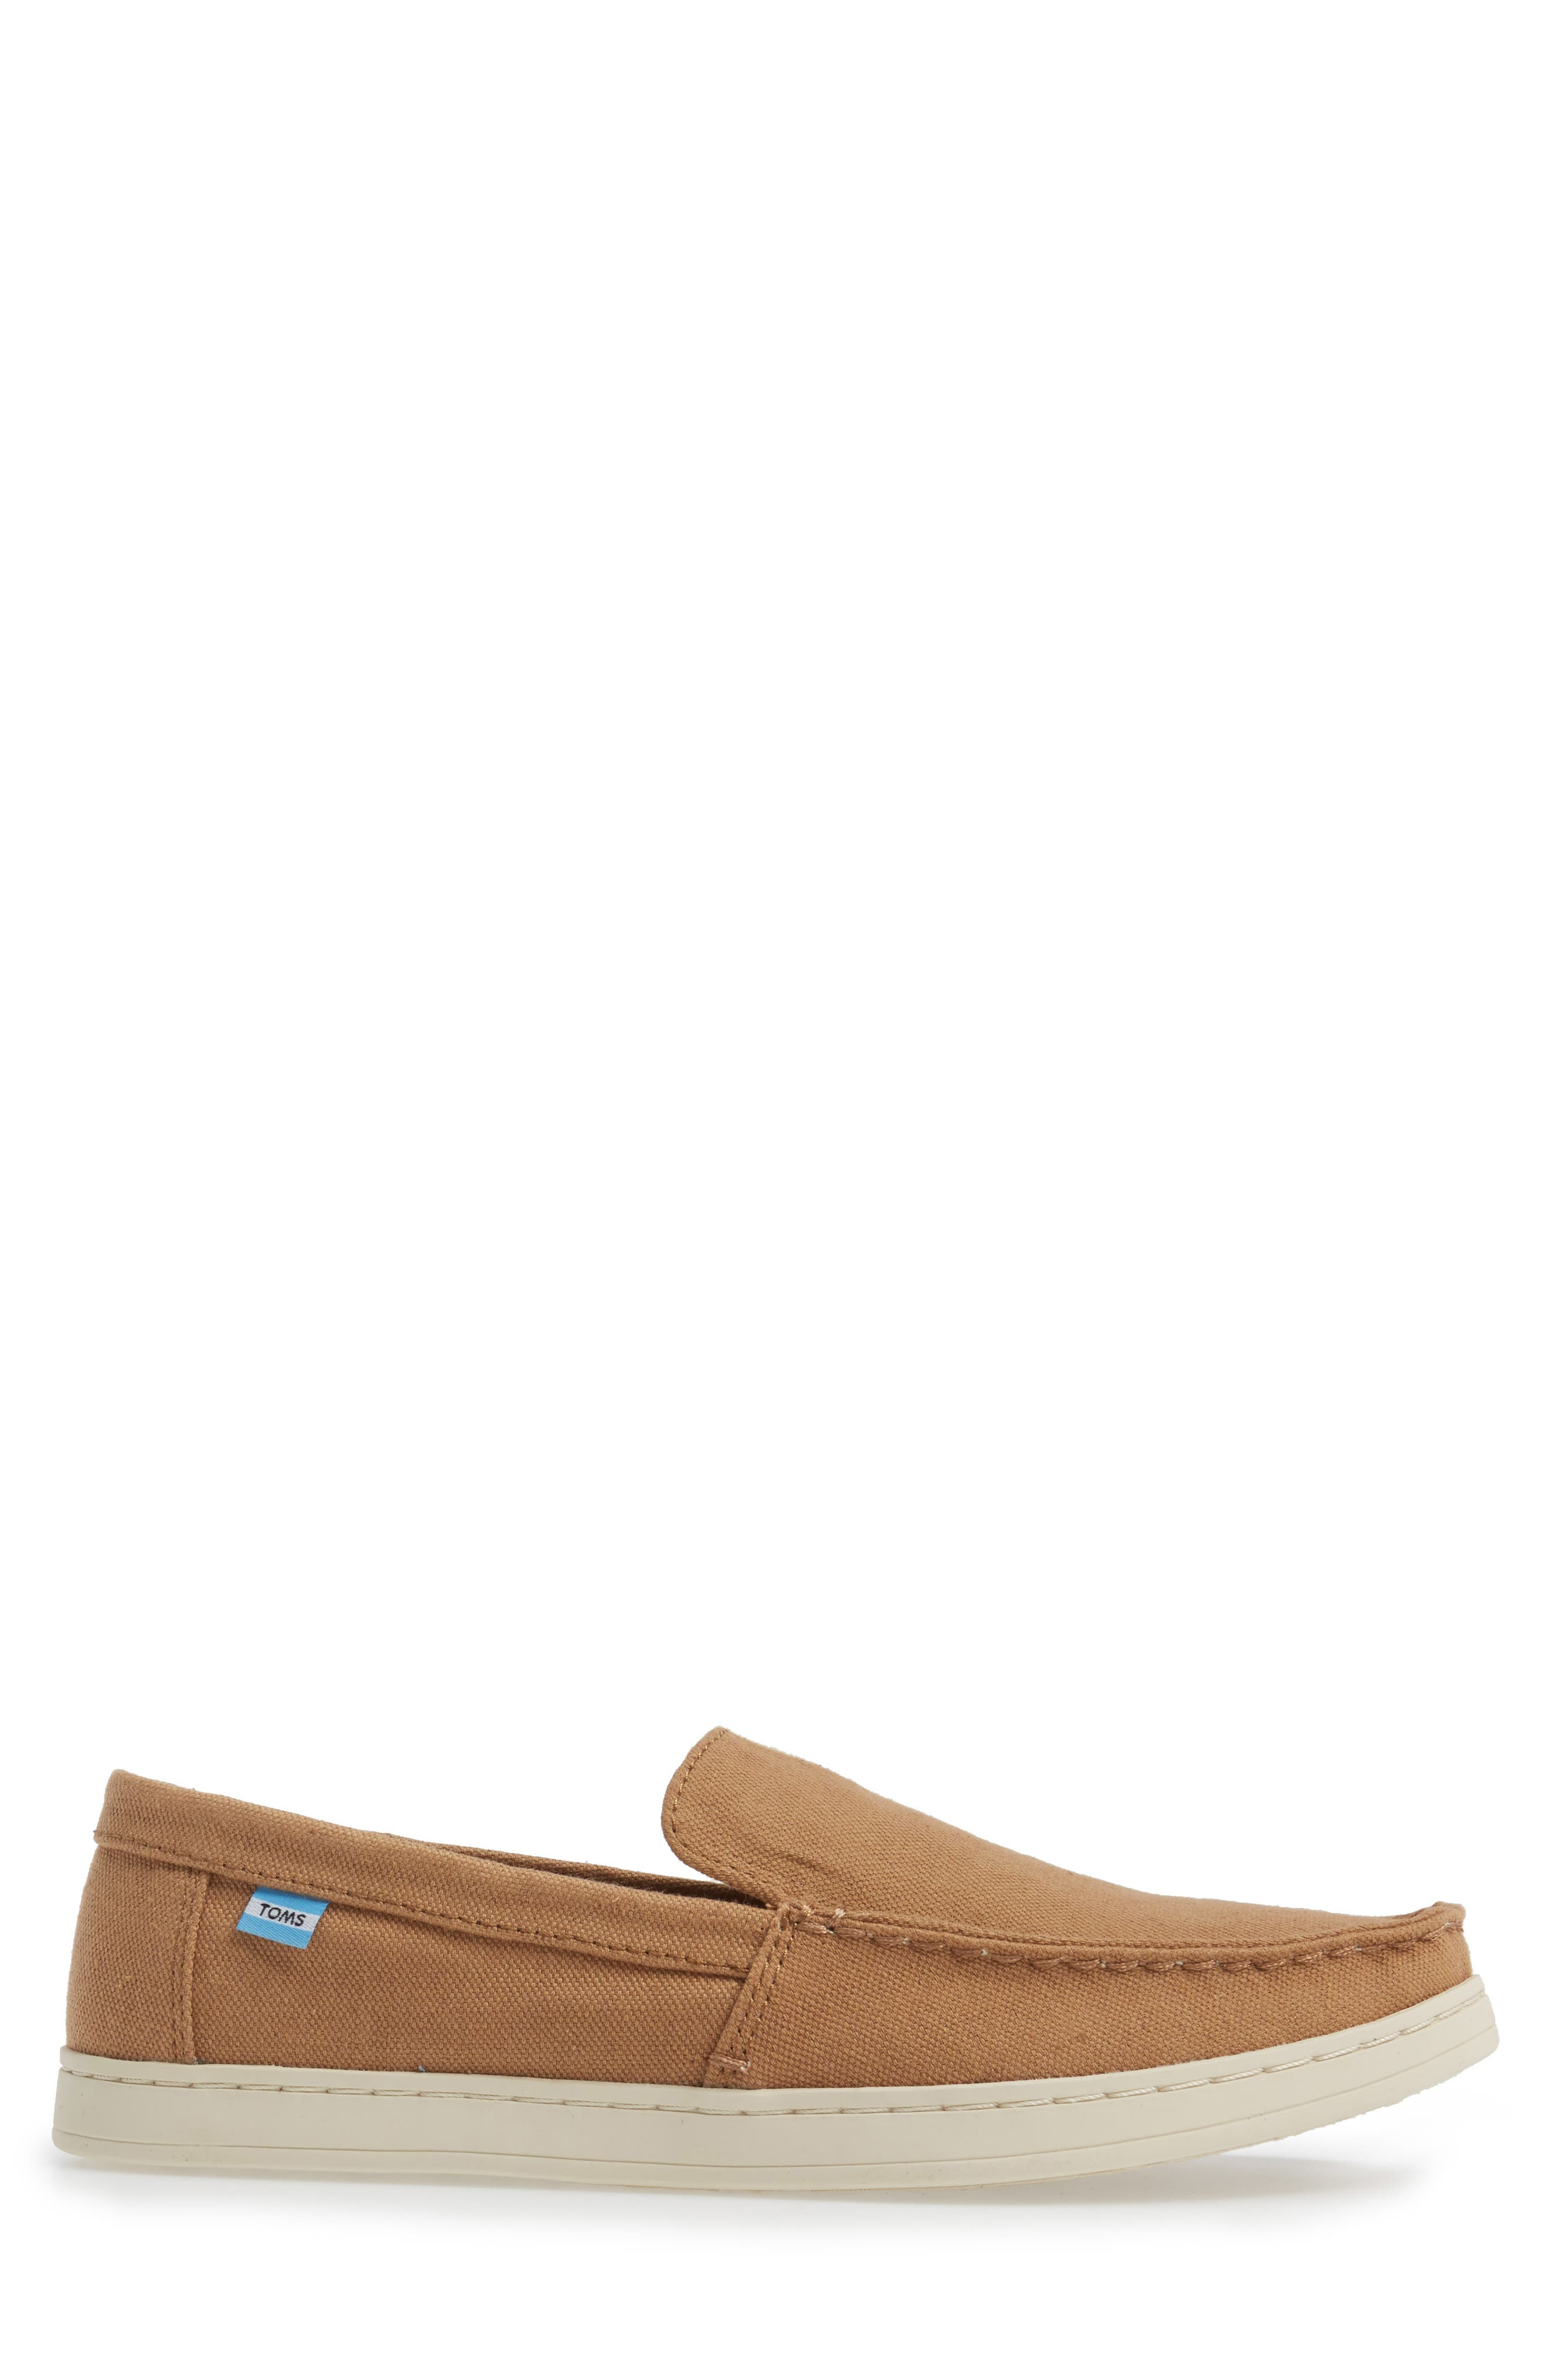 Aiden Slip-On Loafer,                             Alternate thumbnail 3, color,                             Toffee